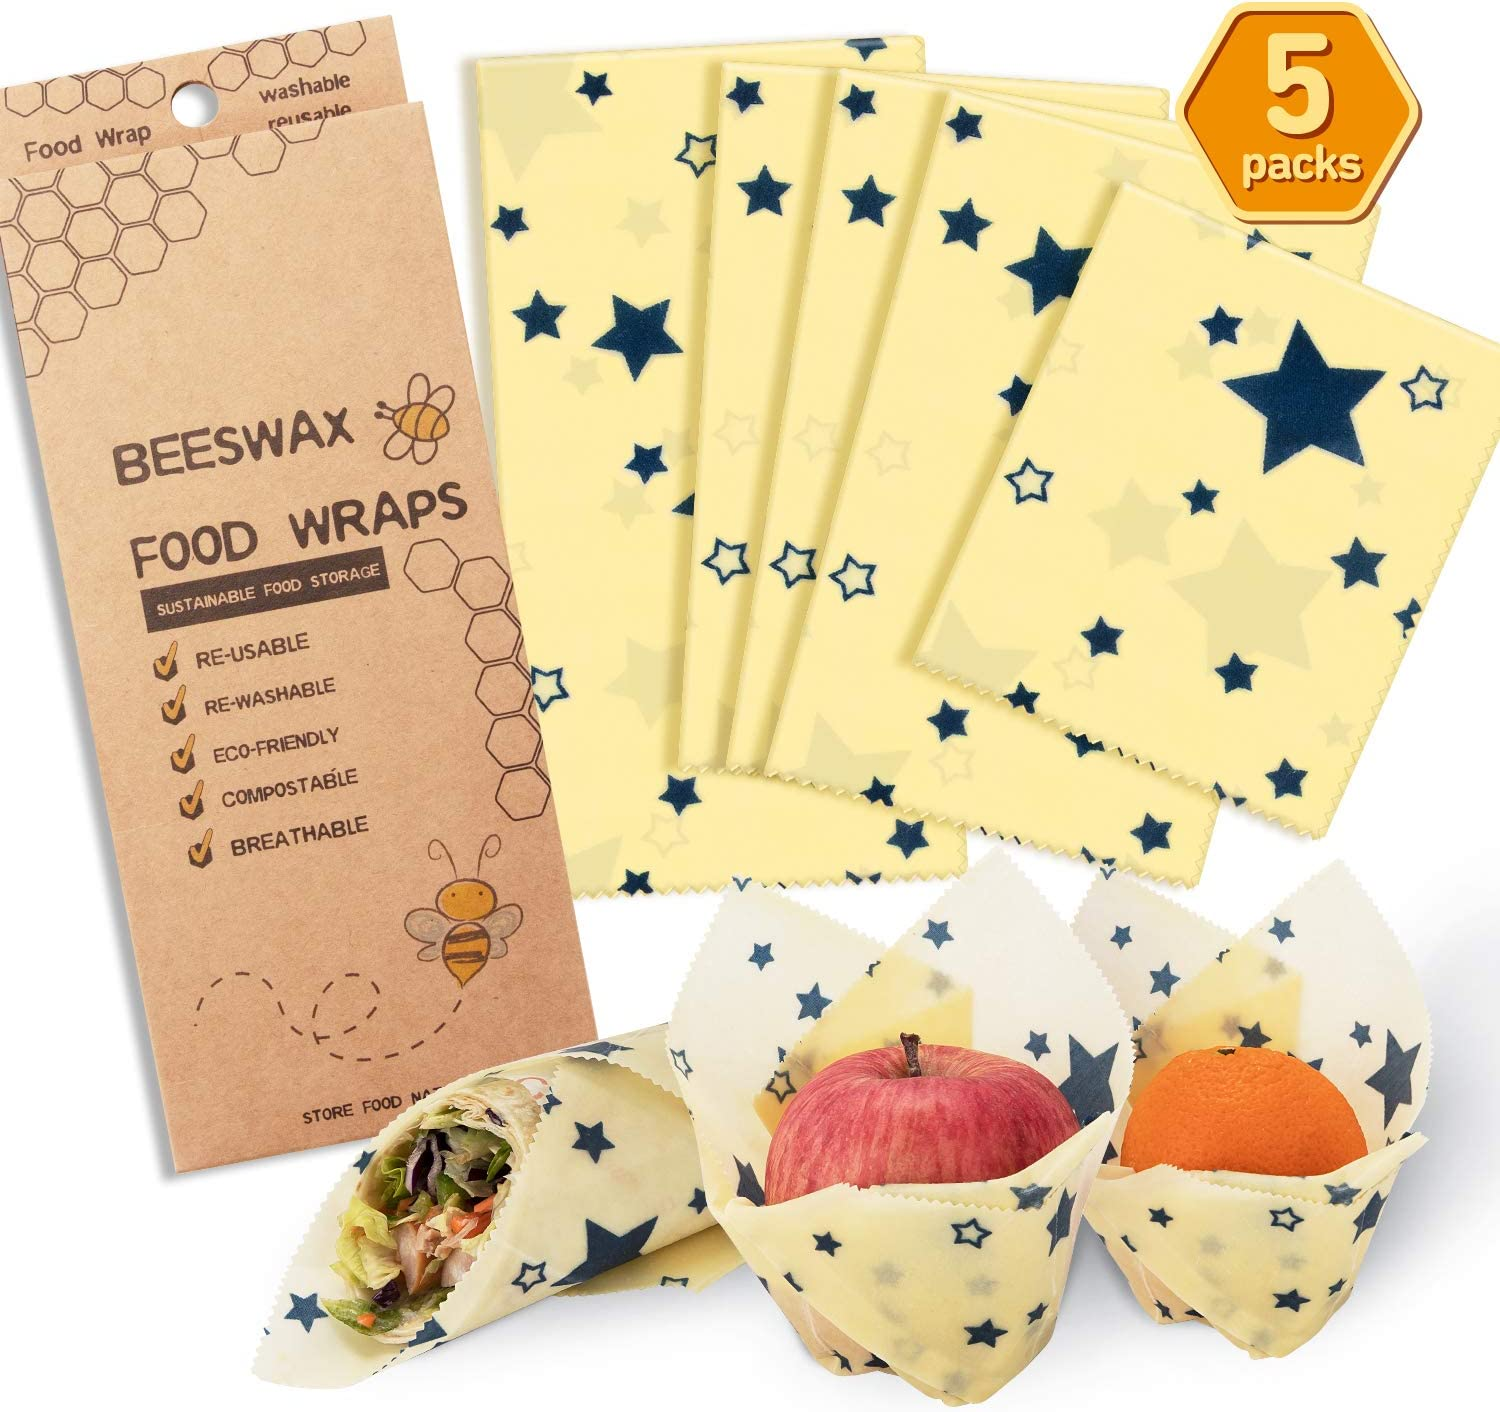 Reusable Beeswax Food Wrap 5 Packs Organic Reusable Food Wrap Beeswax Wrap, Eco Friendly, Organic, Bees Wax Food Storage Wrappers Cling Sandwich, Food Wrap Alternative To Plastic Bags Wraps(Star)